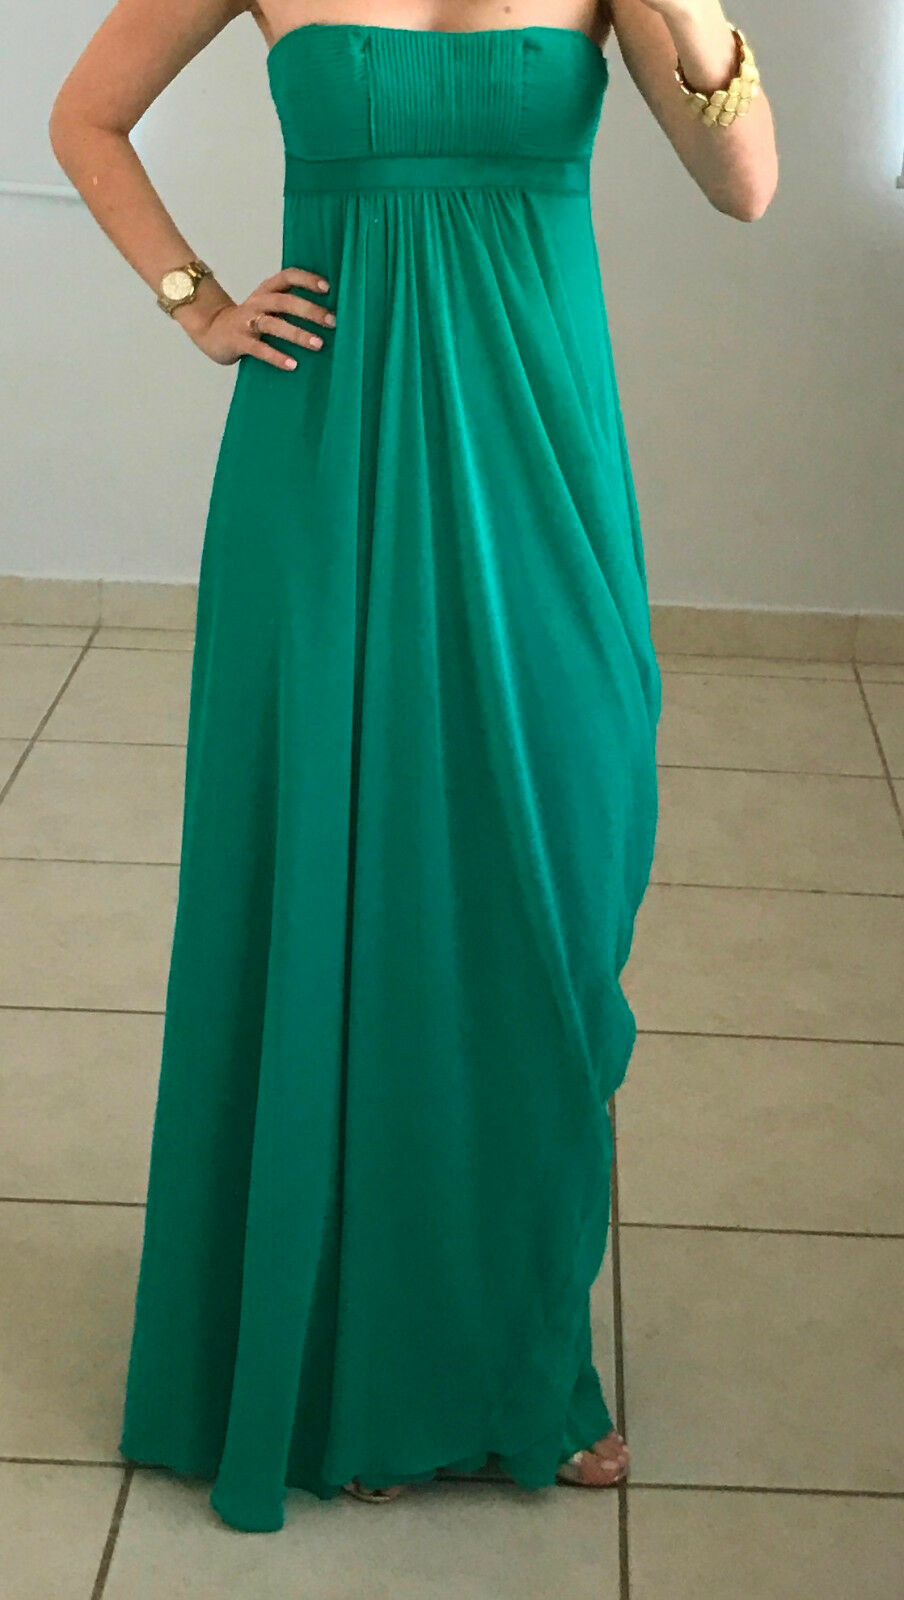 BCBG MAXAZRIA STRAPLESS LONG DRESS SEAGREEN SIZE 4